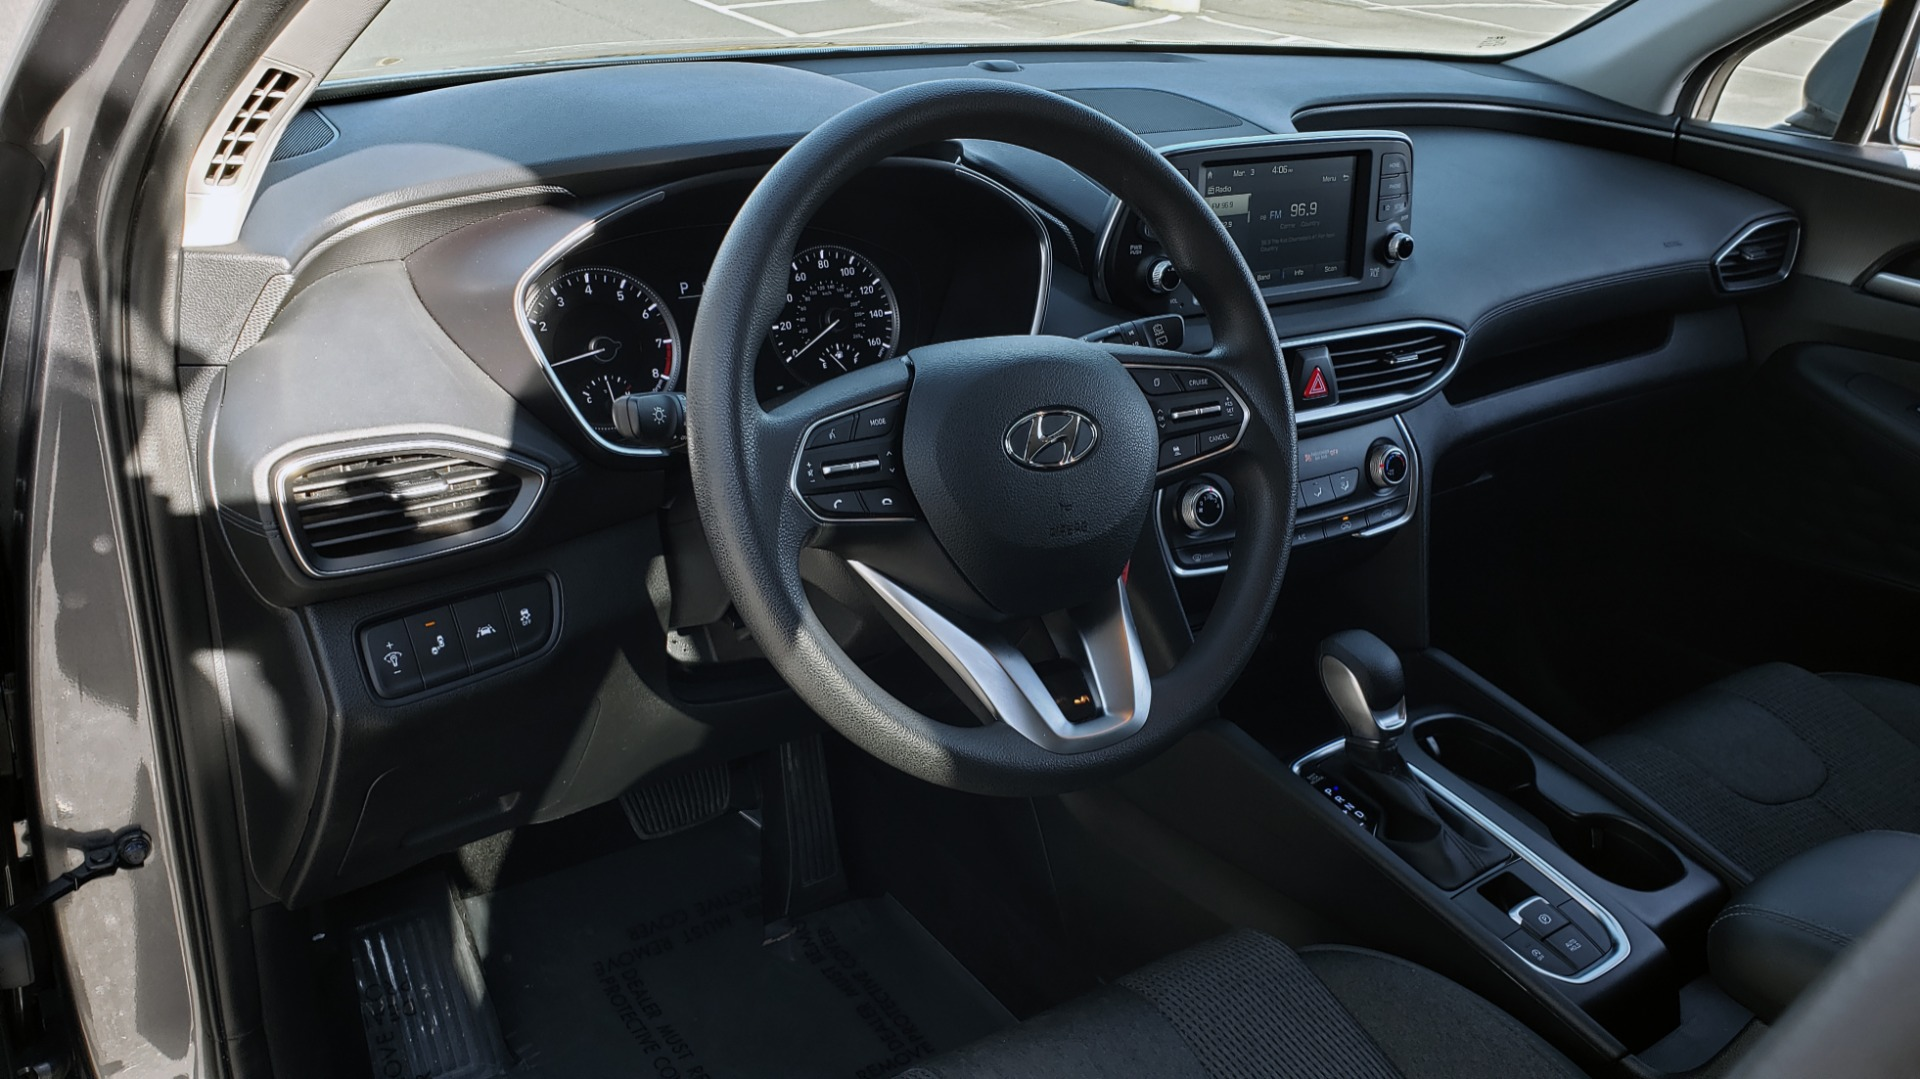 Used 2019 Hyundai SANTA FE SE / 2.4L 4-CYL / 8-SPD AUTO / BLIND SPOT / LANE KEEP ASSIST for sale Sold at Formula Imports in Charlotte NC 28227 38